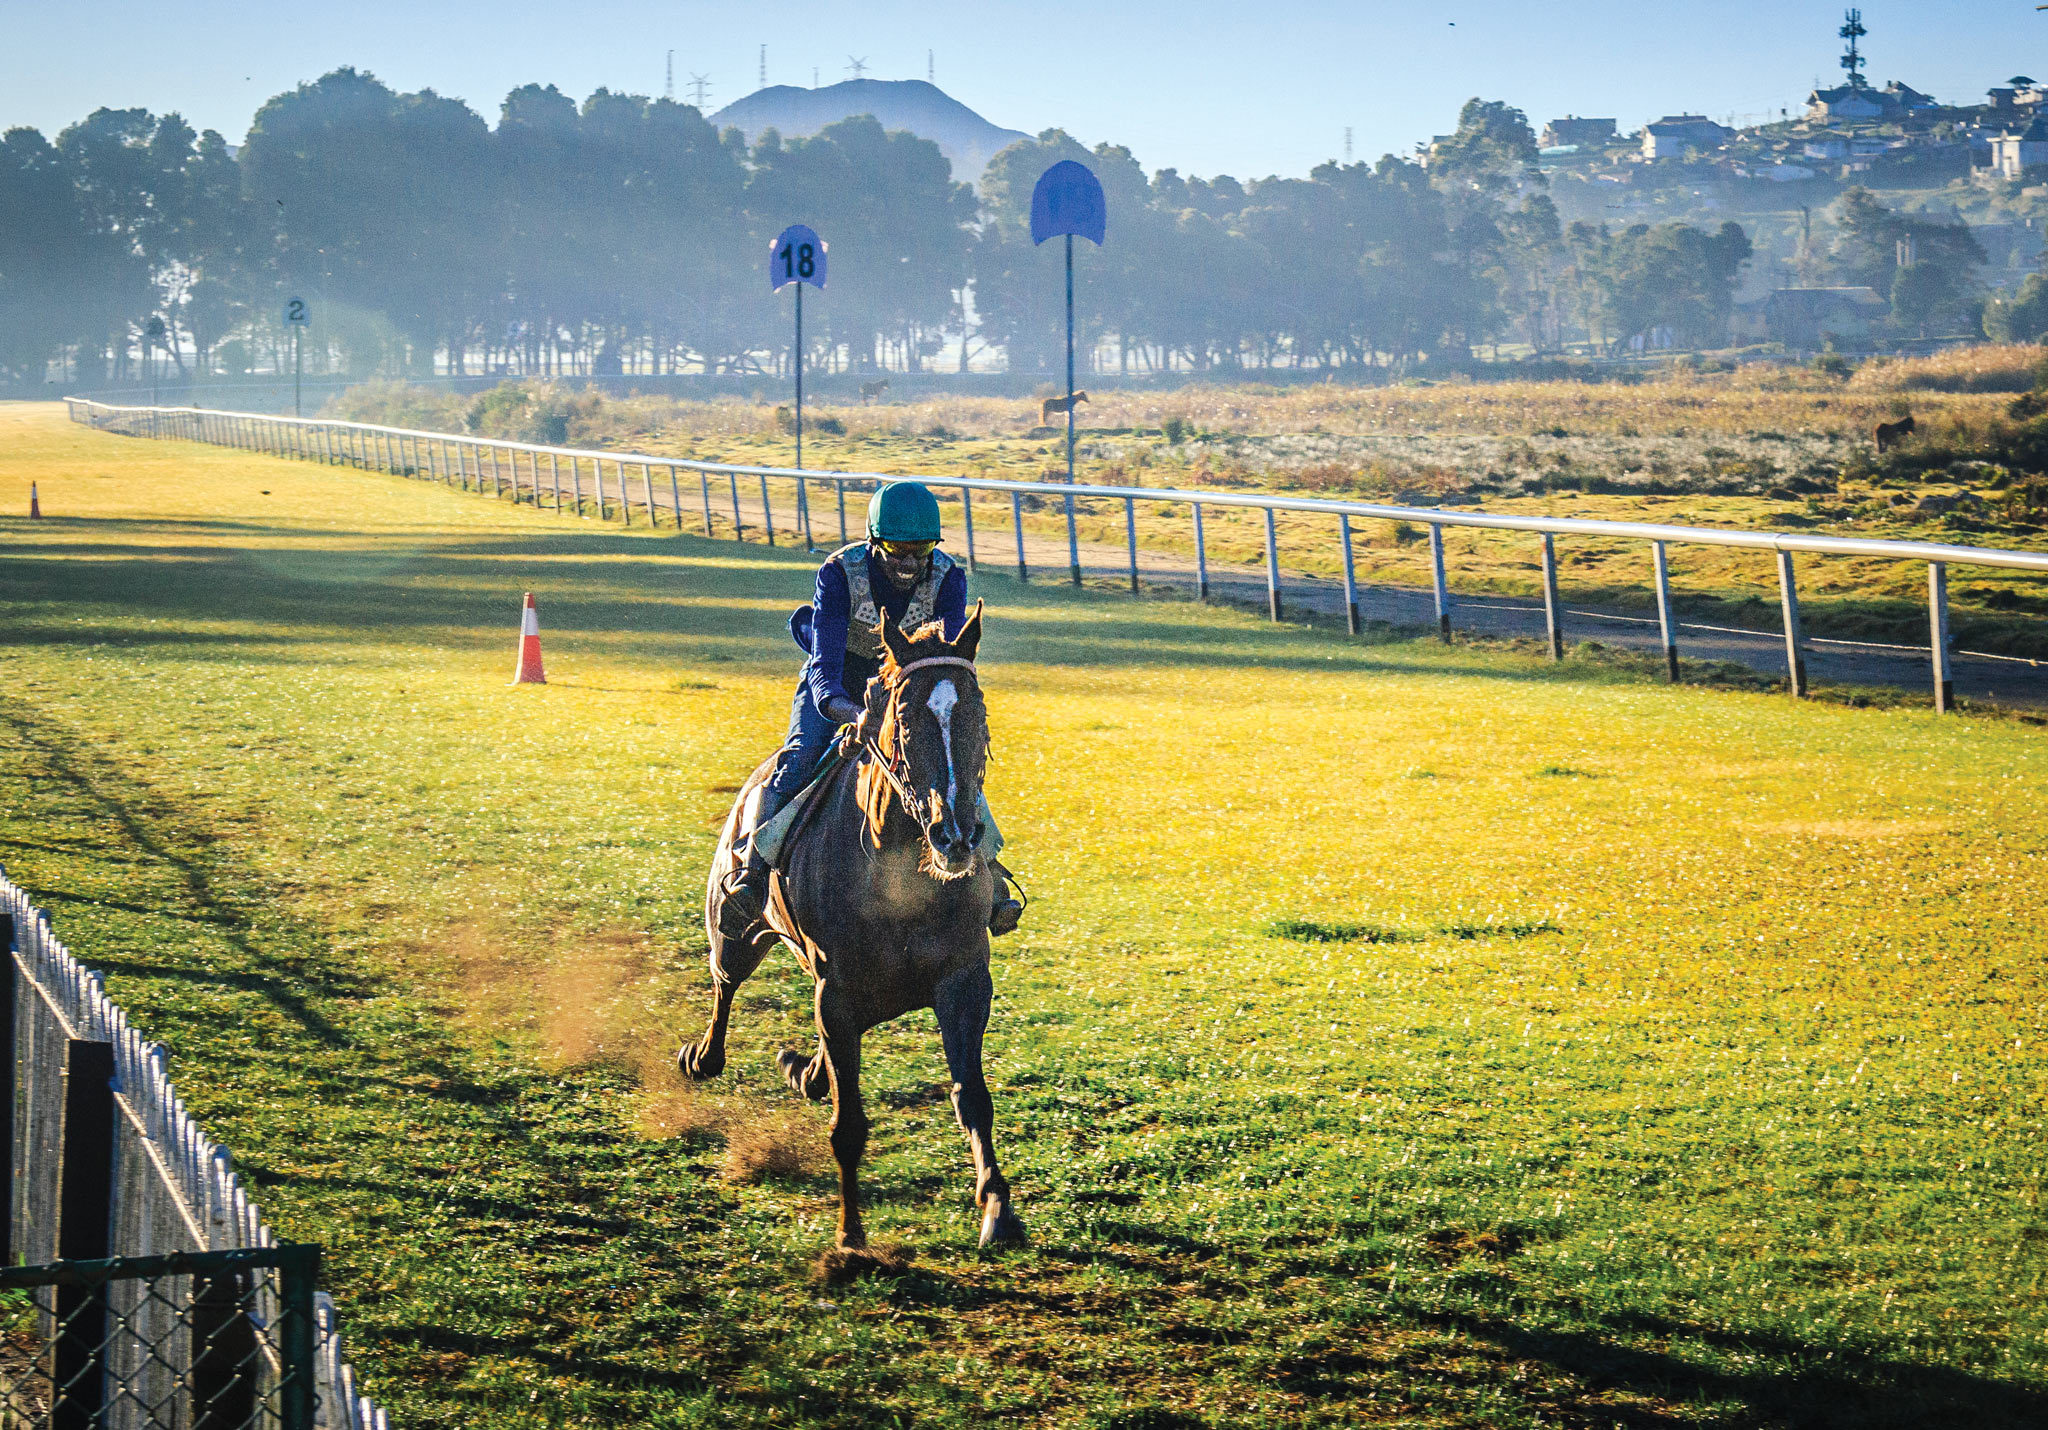 The Nuwara Eliya Horse Races are on, and it is time to look your best